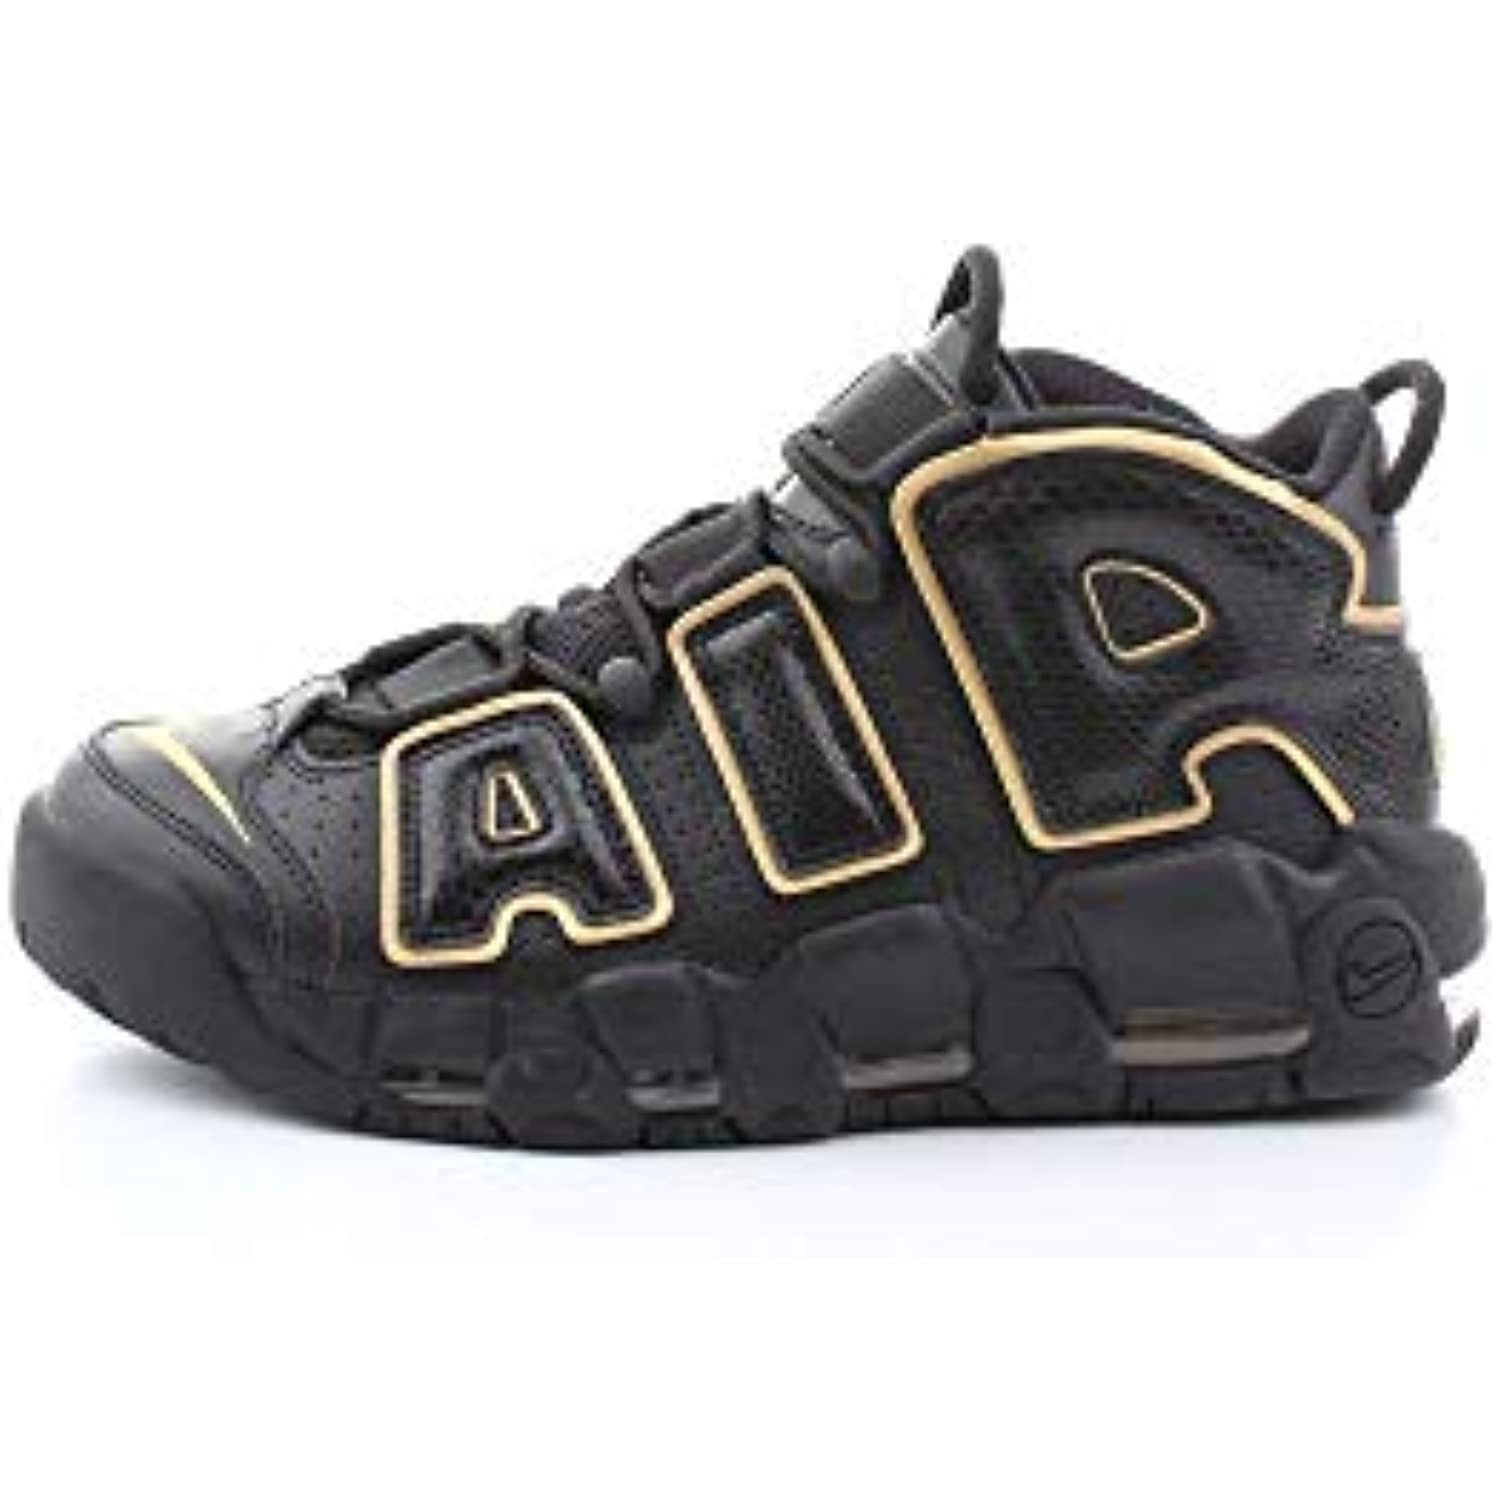 NIKE Air More Uptempo - '96 France QS, Chaussures de Fitness Homme - Uptempo B07G7QFSYN - 0afd79